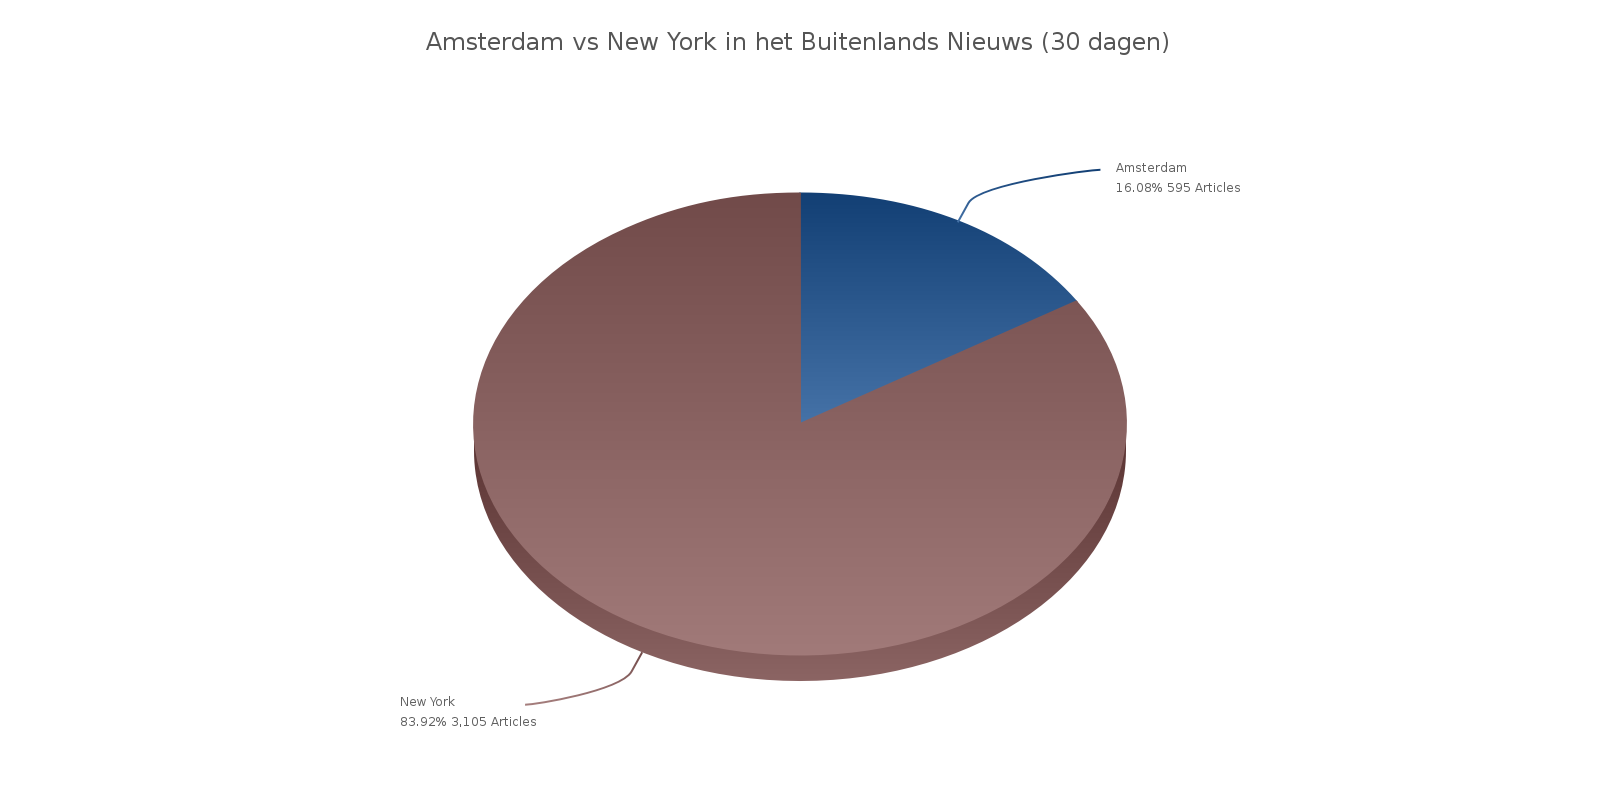 City marketing Amsterdam vs New York